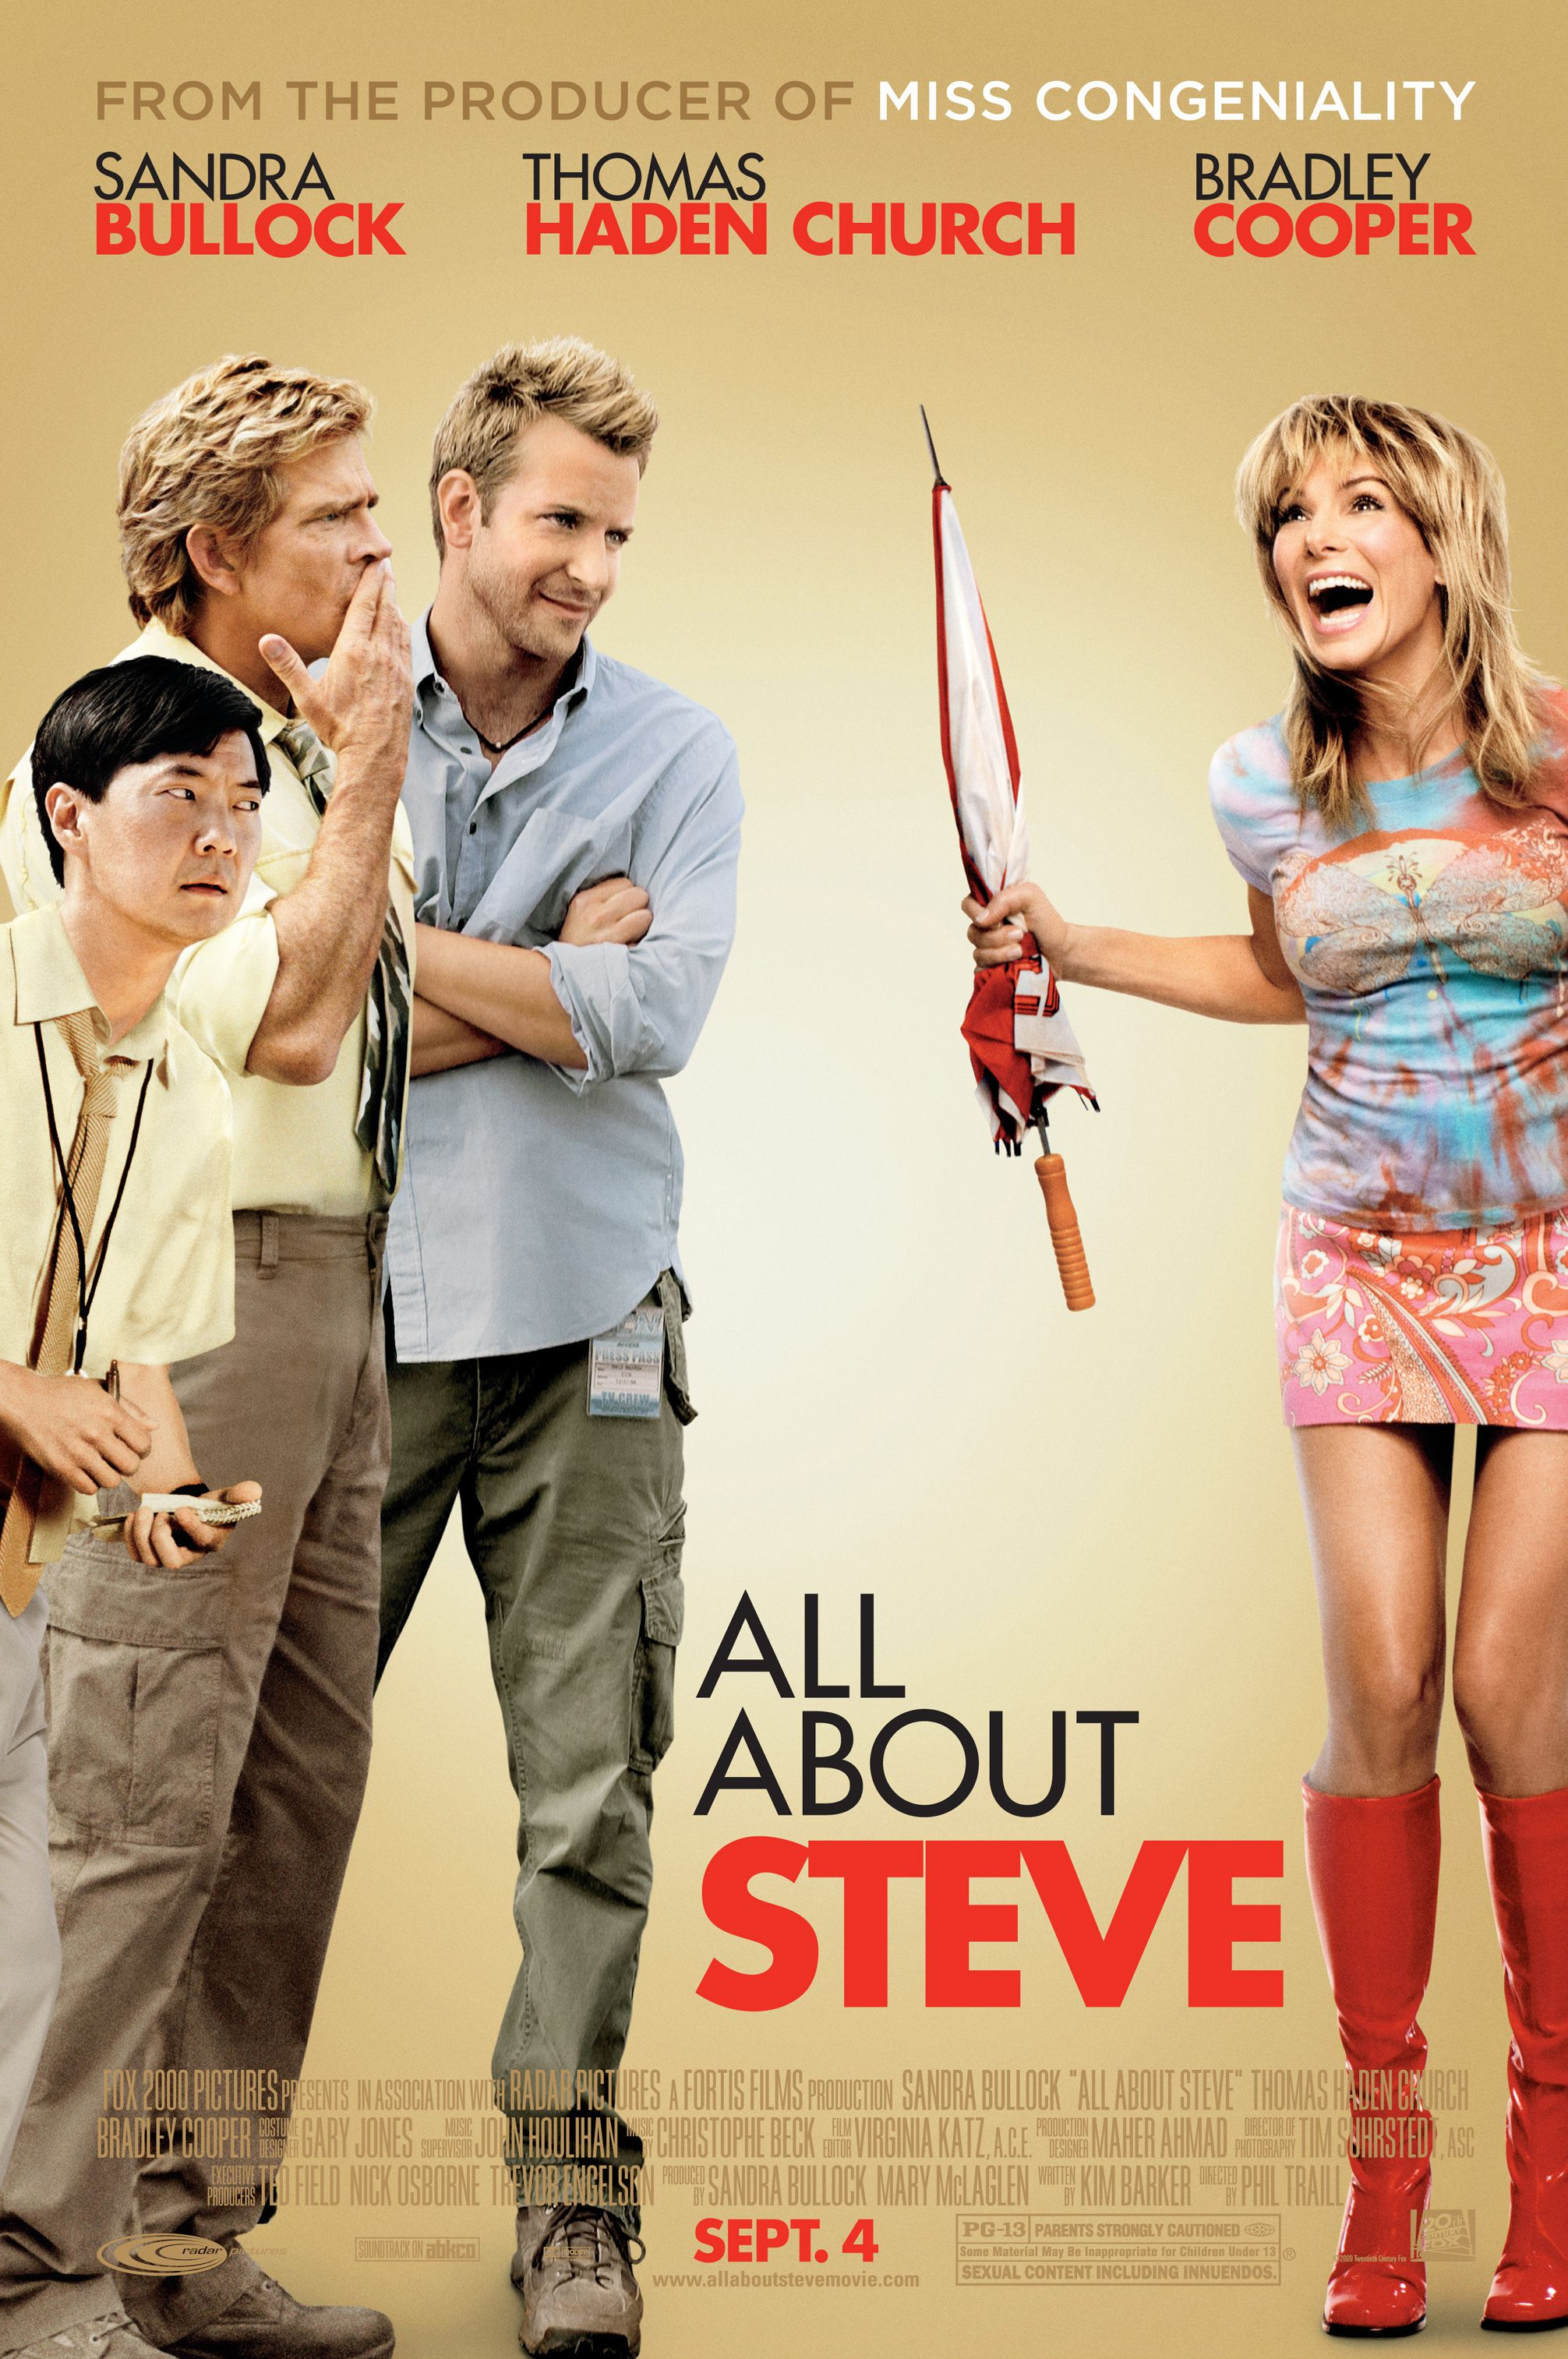 All About Steve - Film (2009)